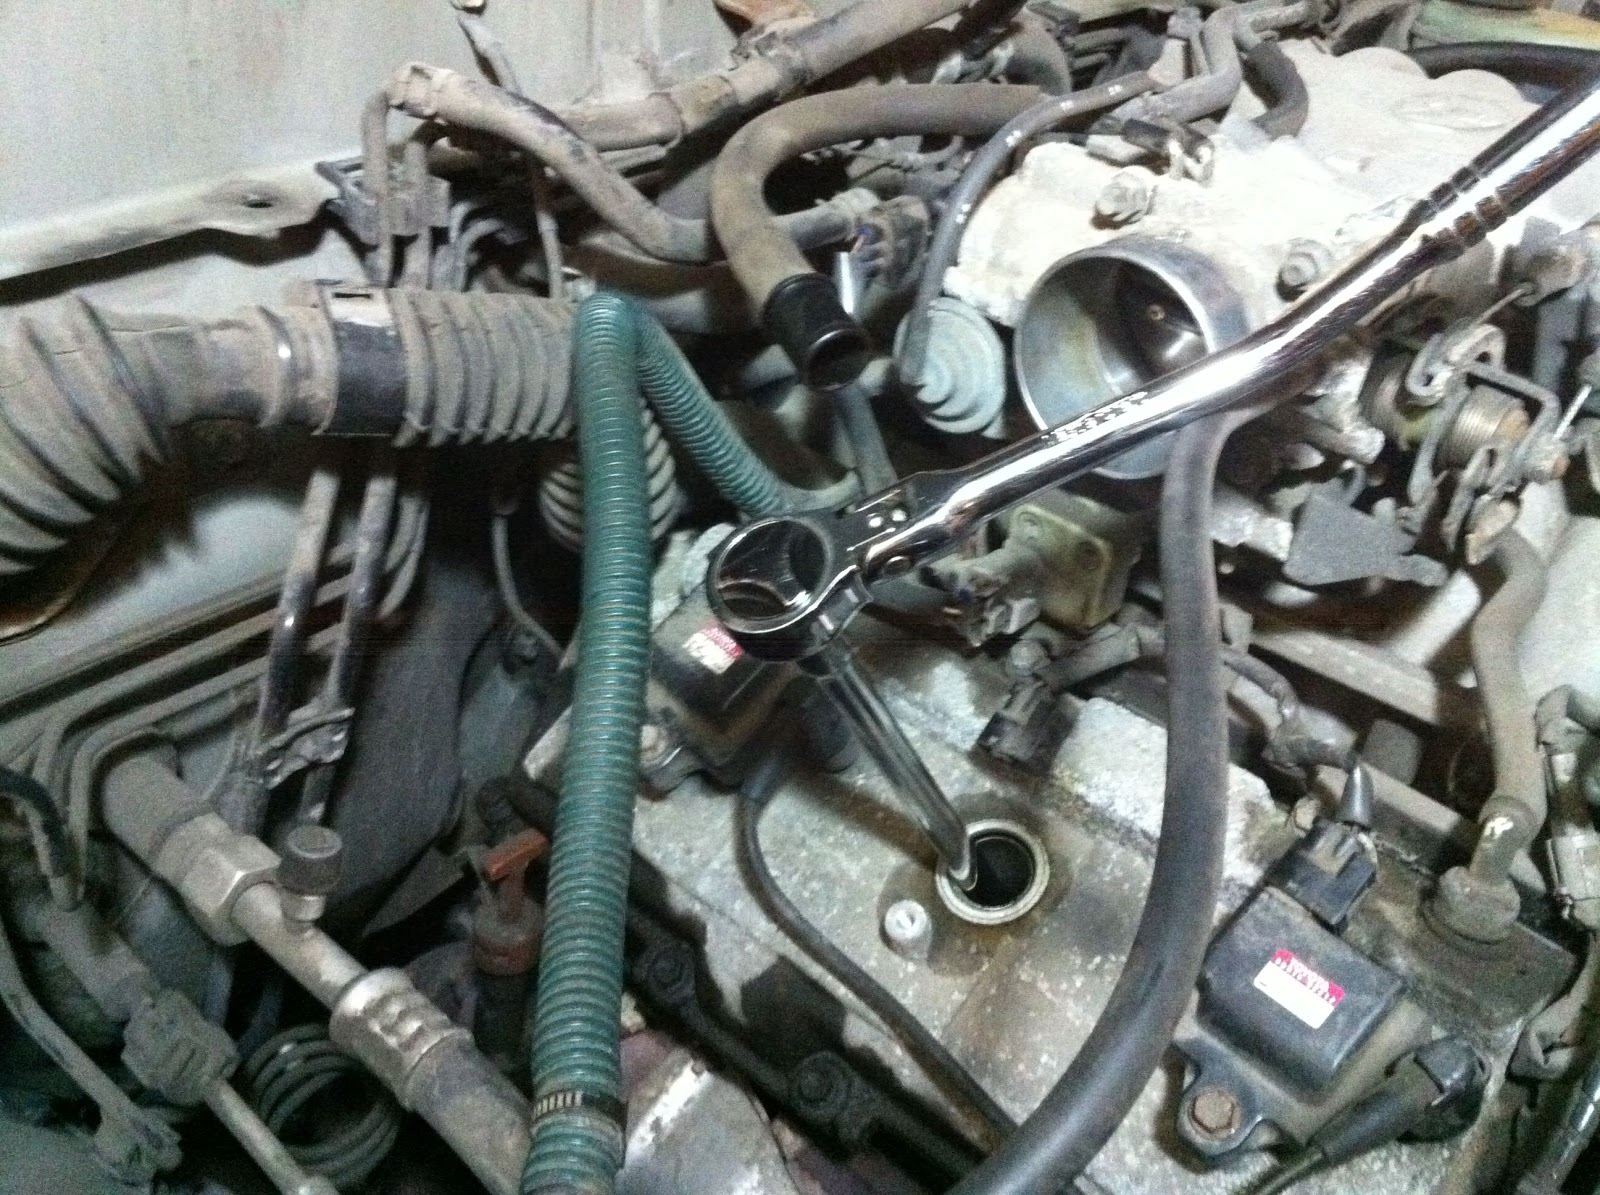 Experience Database Replacing 1999 Toyota 4runner Spark Plug 2000 Intake Torque 7 Now You Can Remove The Just Make Sure To Use A Regular Wrench Never Anything